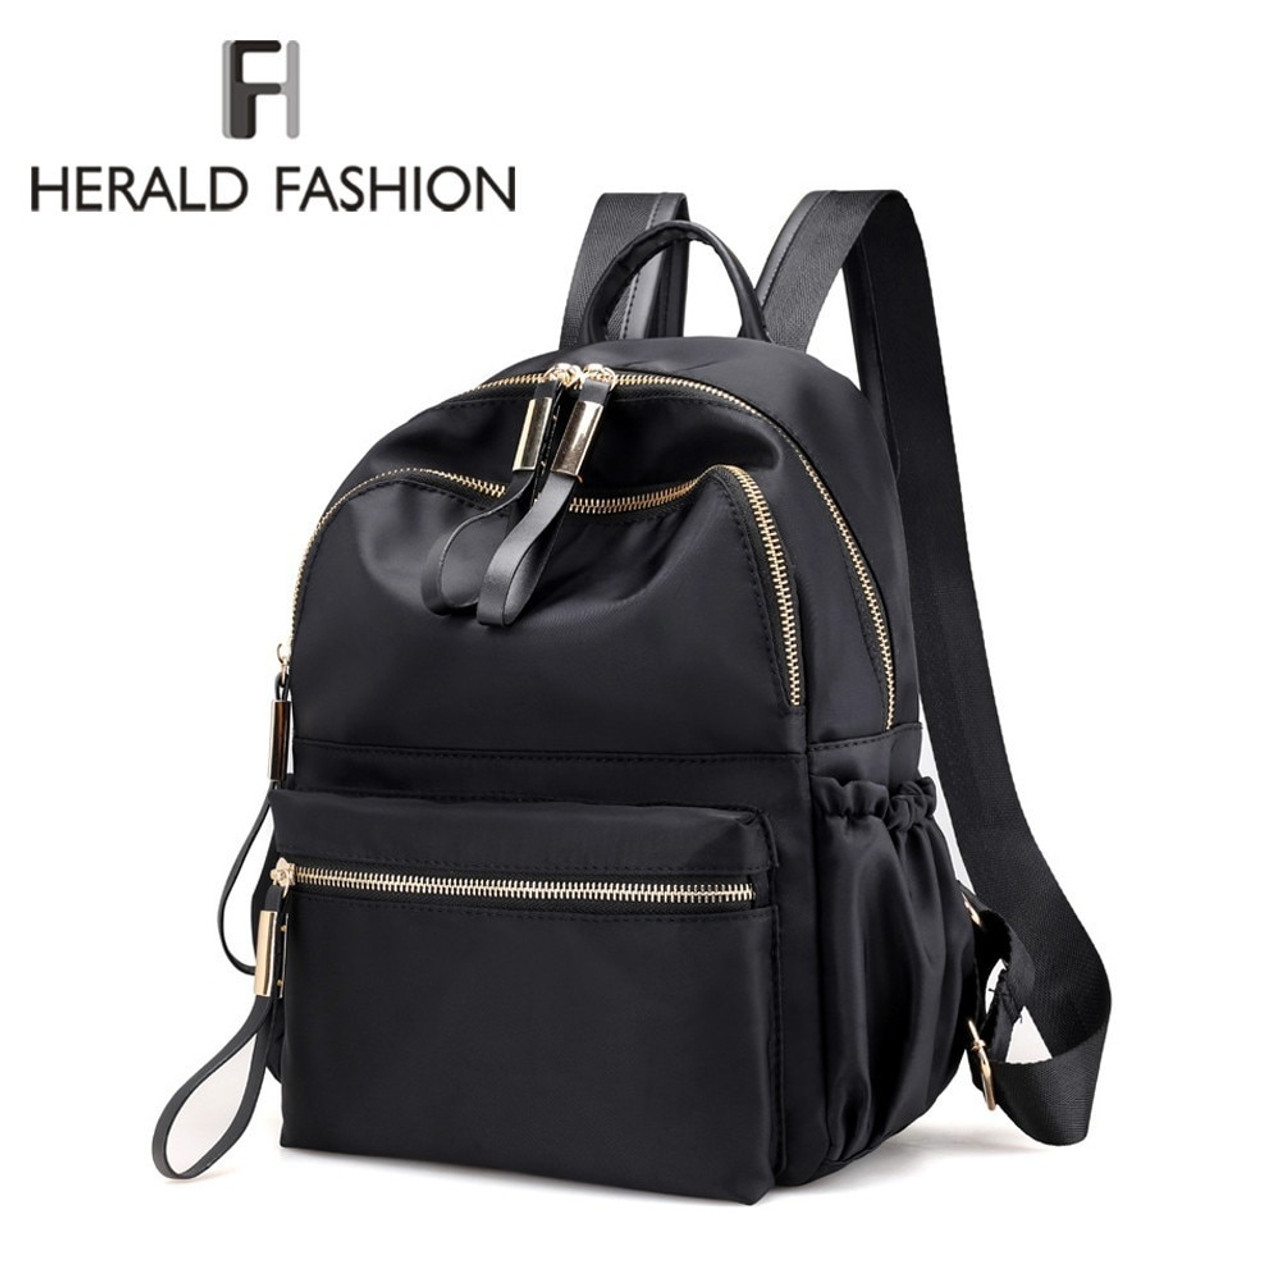 34f98391bc5 Herald Fashion Backpack Women Leisure Back Pack Korean Ladies Knapsack  Casual Travel Bags for School Teenage Girls Bagpack